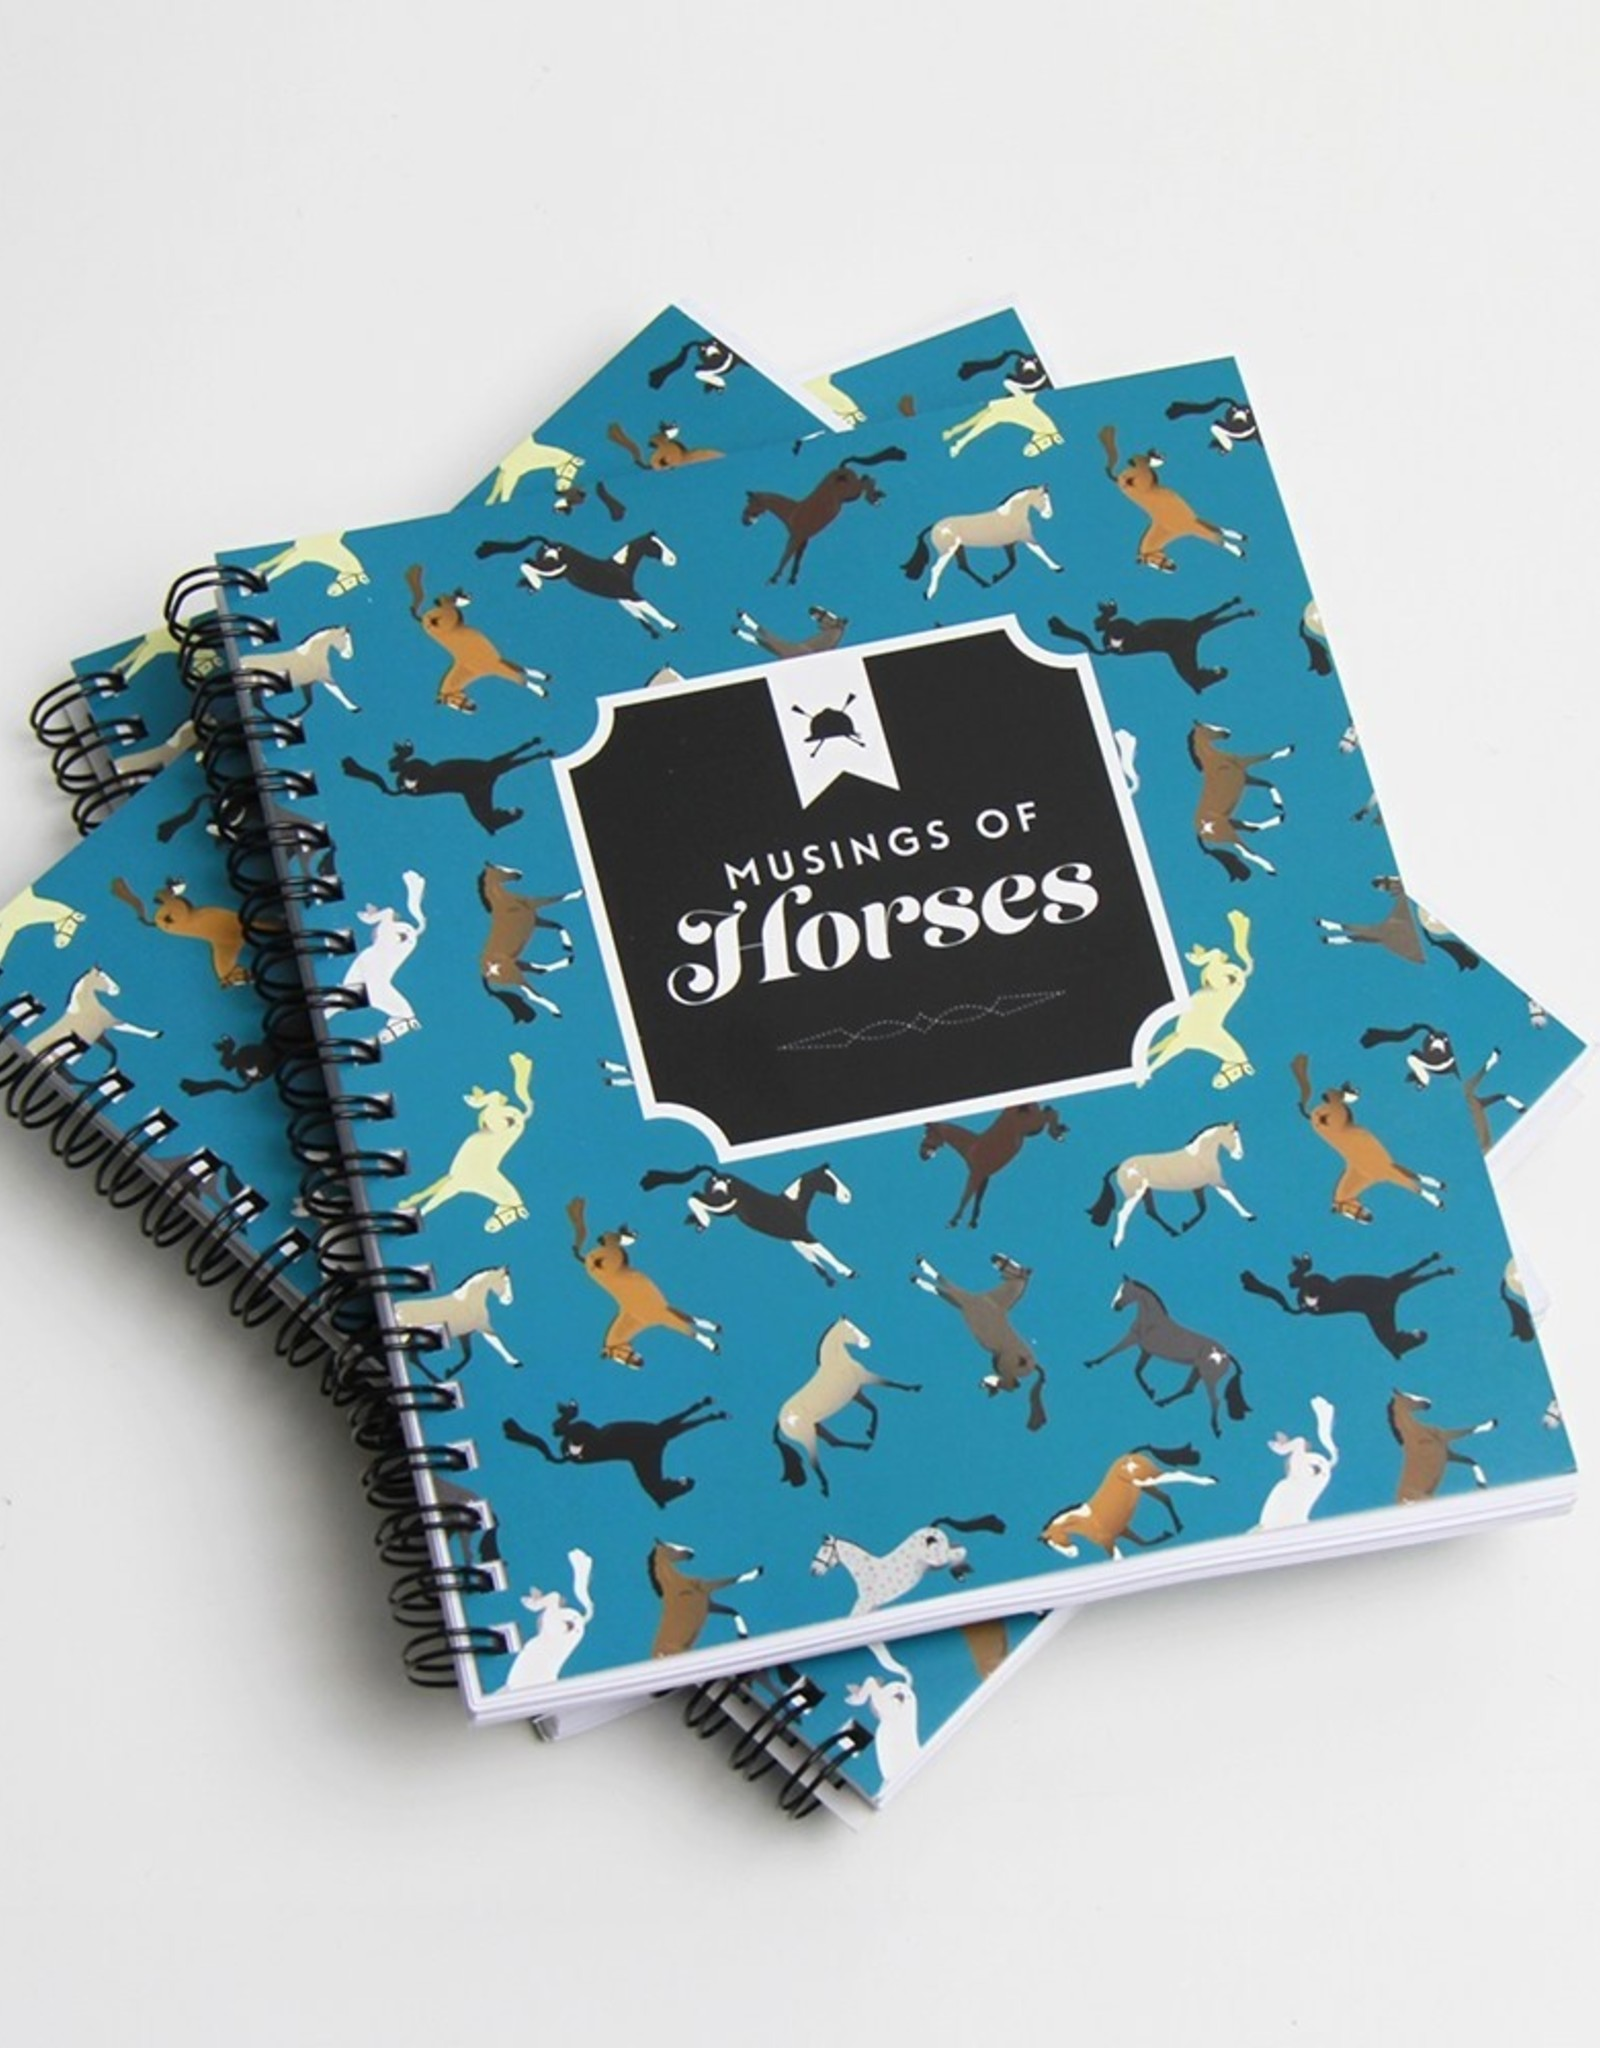 HUNTSEAT PAPER CO. MUSINGS OF HORSES NOTEBOOK